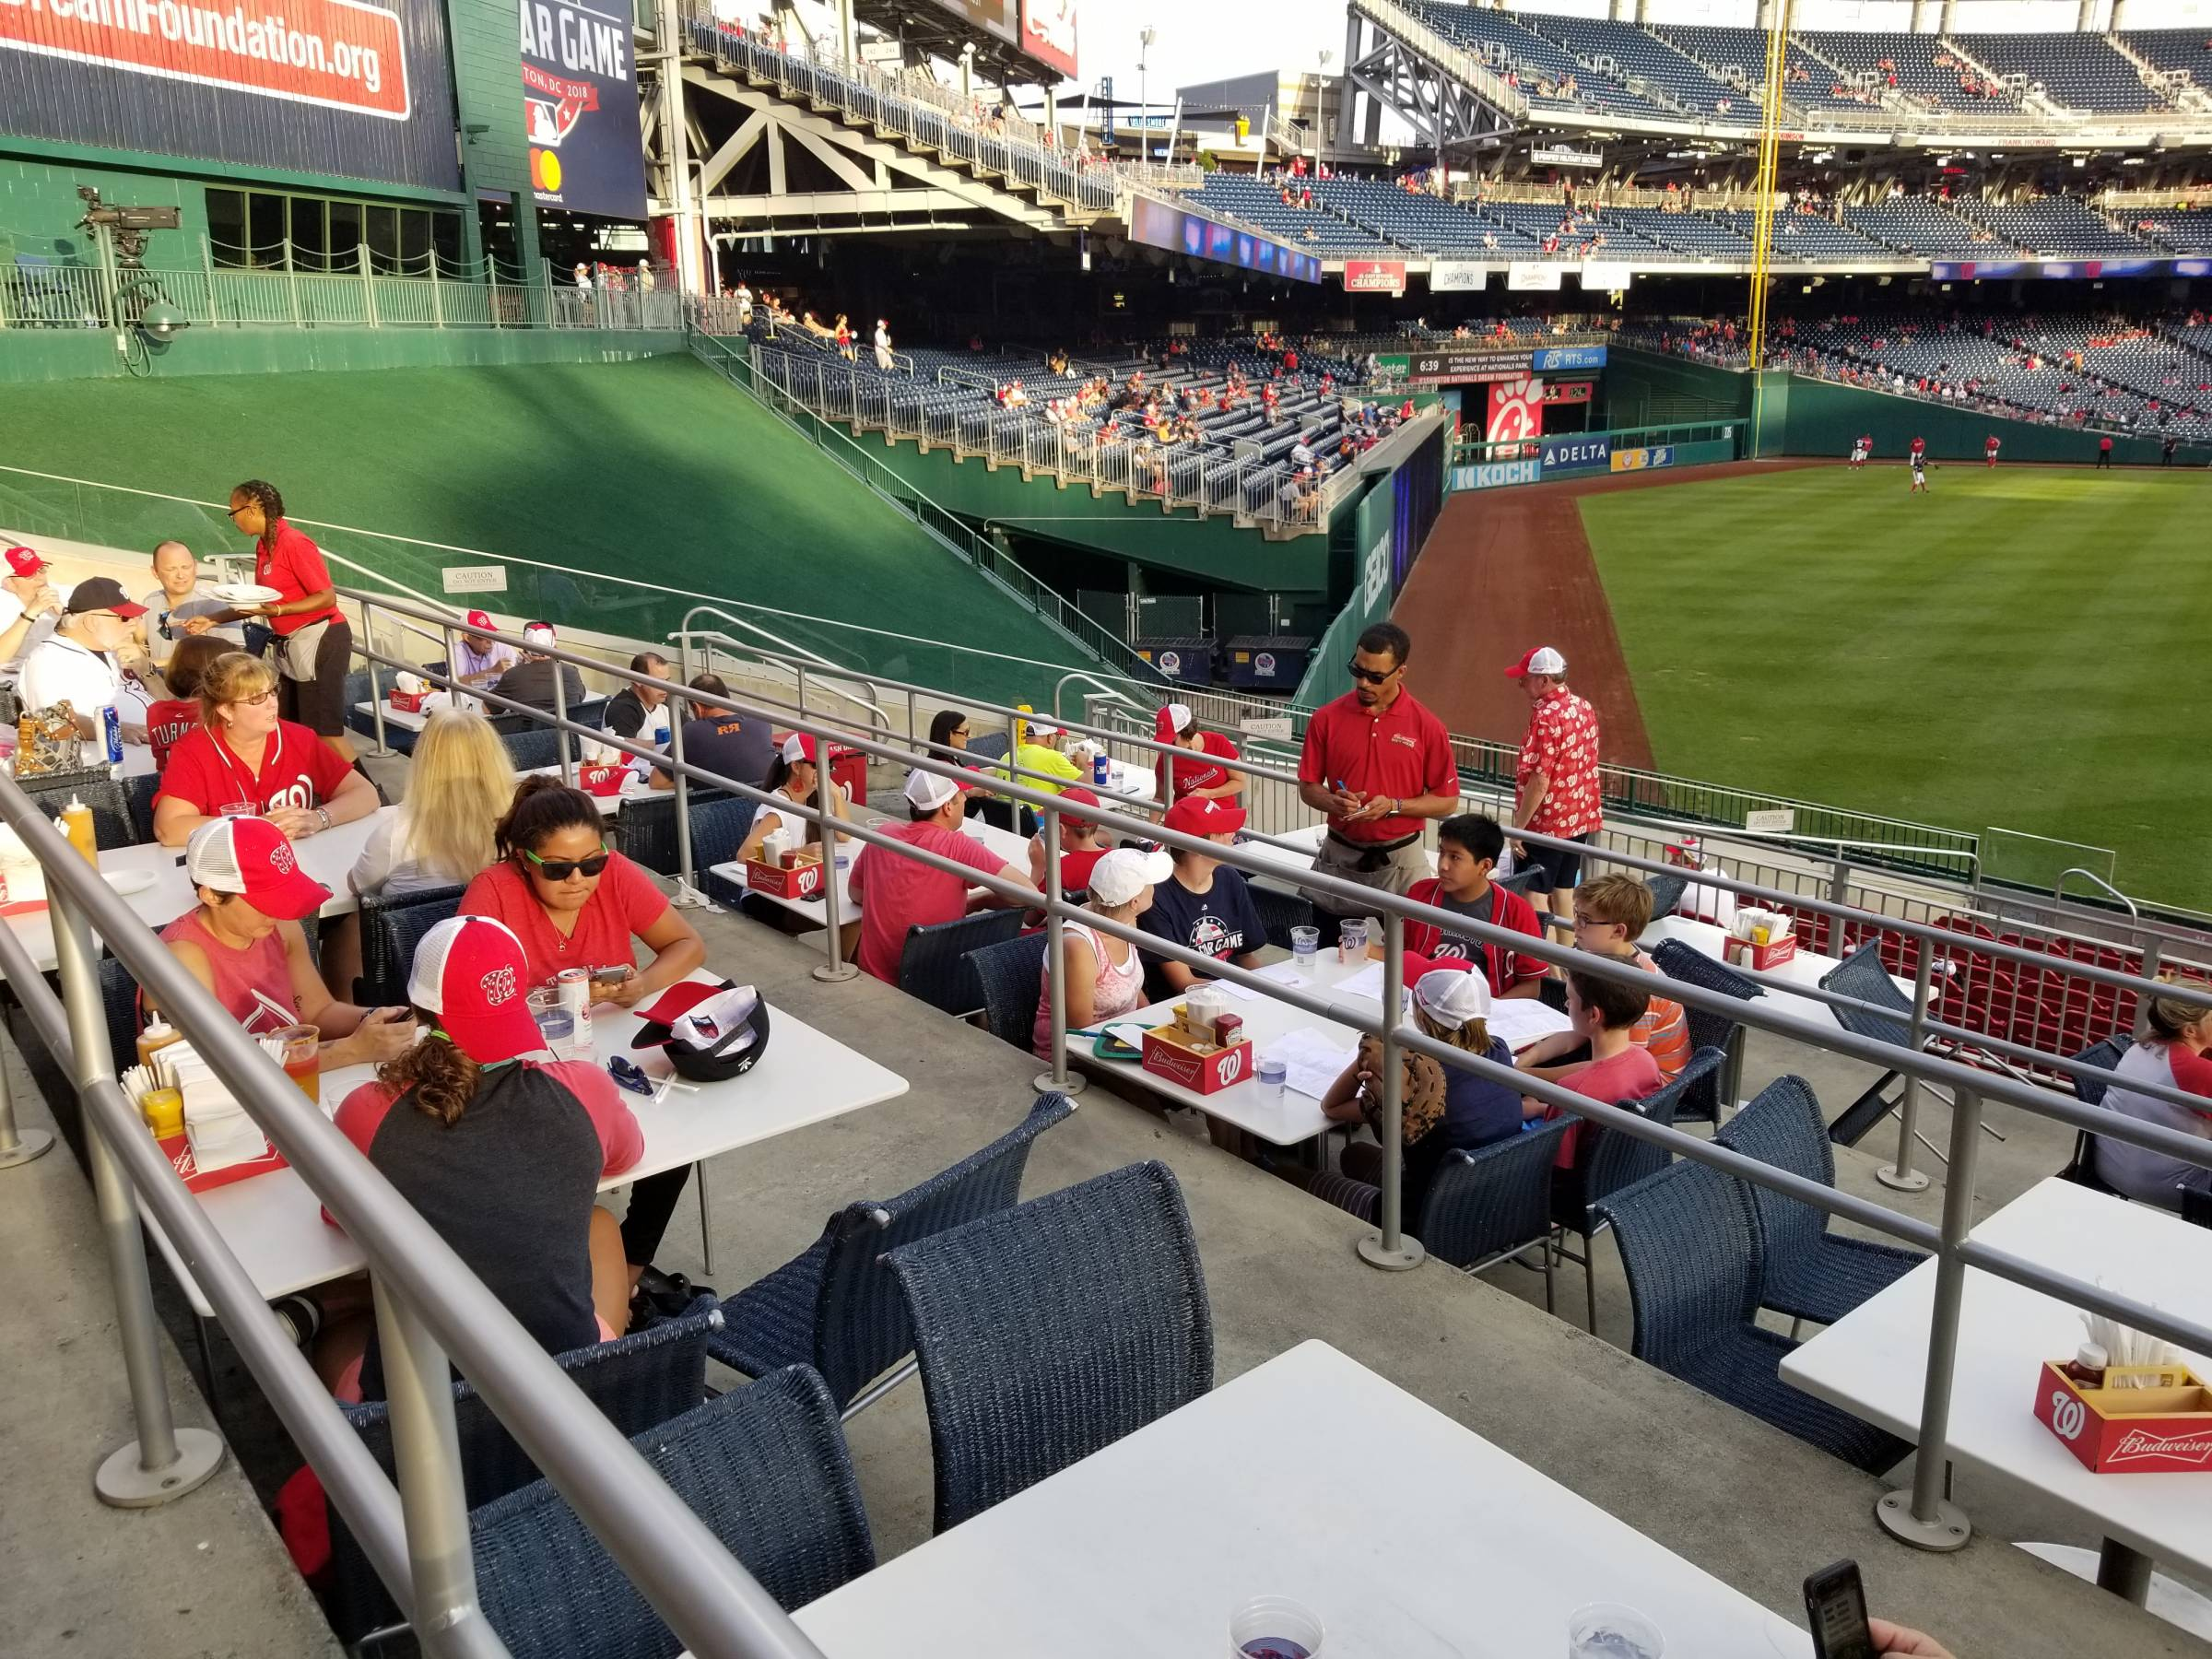 Nationals Park Seating For Nationals Games Rateyourseats Com